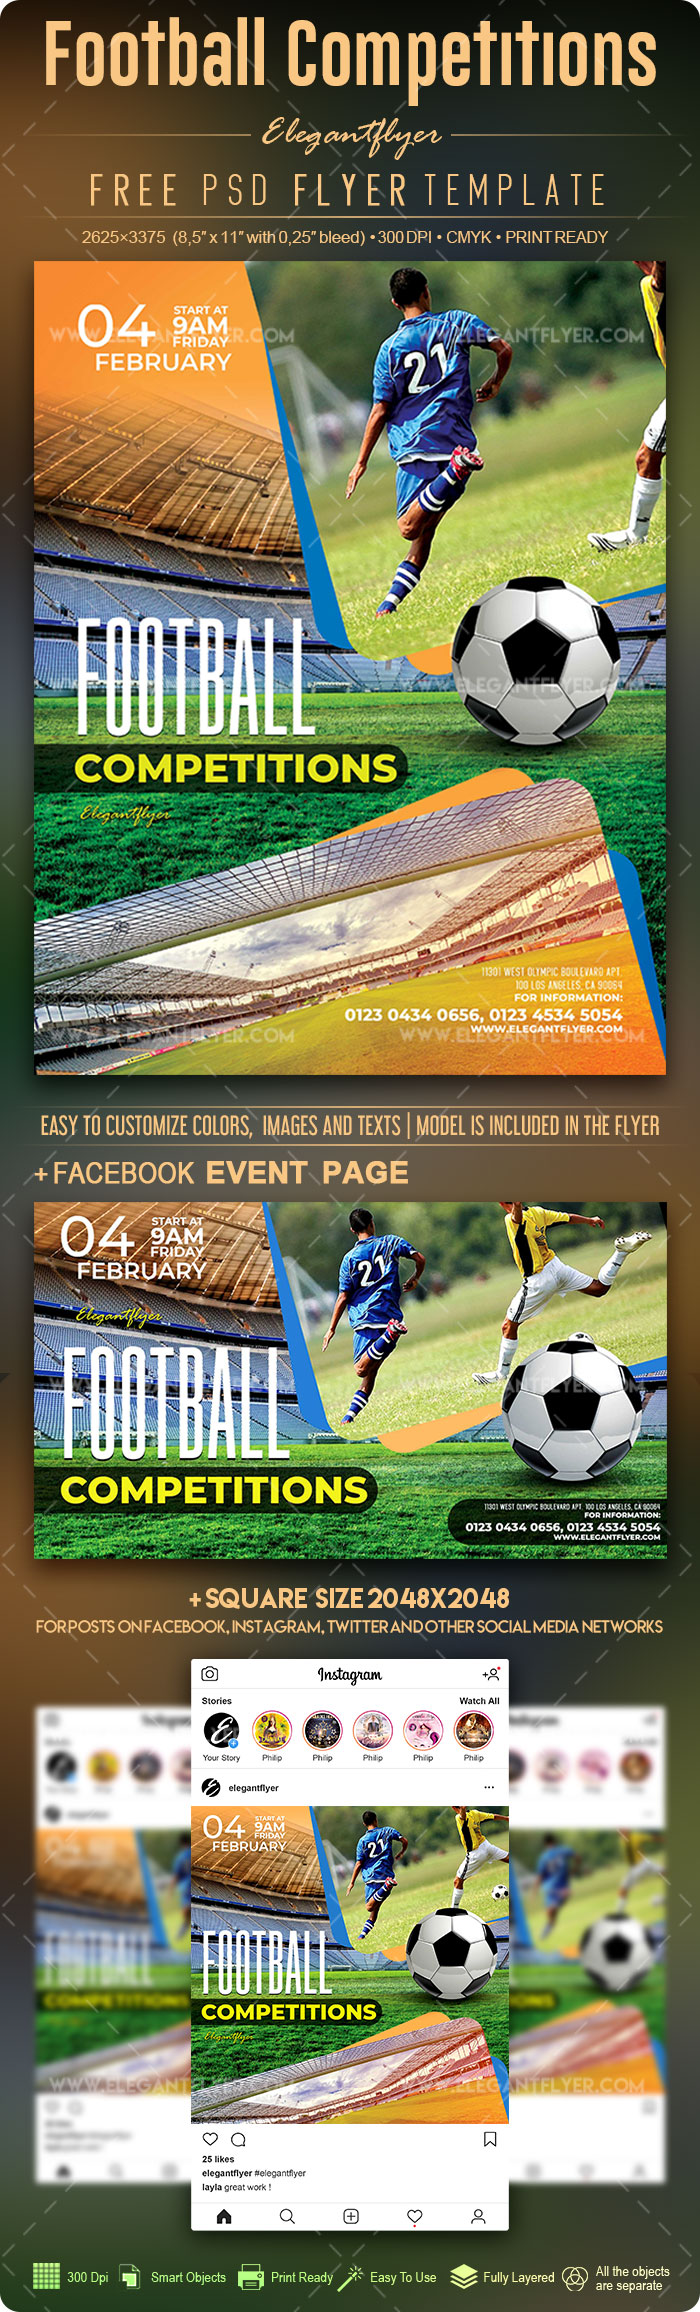 Football Competitions – Free Flyer PSD Template